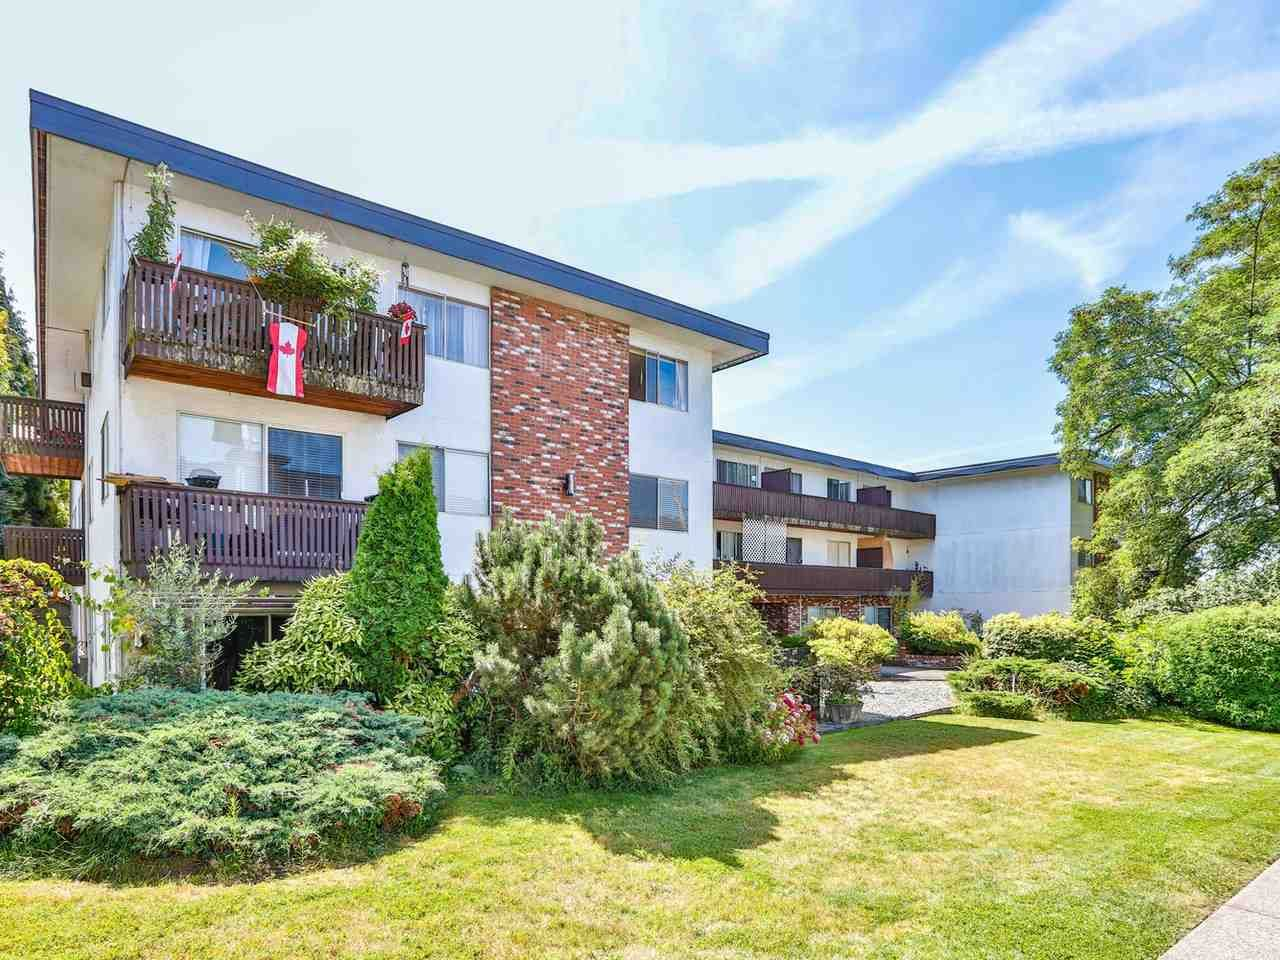 """Main Photo: 301 910 FIFTH Avenue in New Westminster: Uptown NW Condo for sale in """"Grosvenor Court"""" : MLS®# R2478805"""